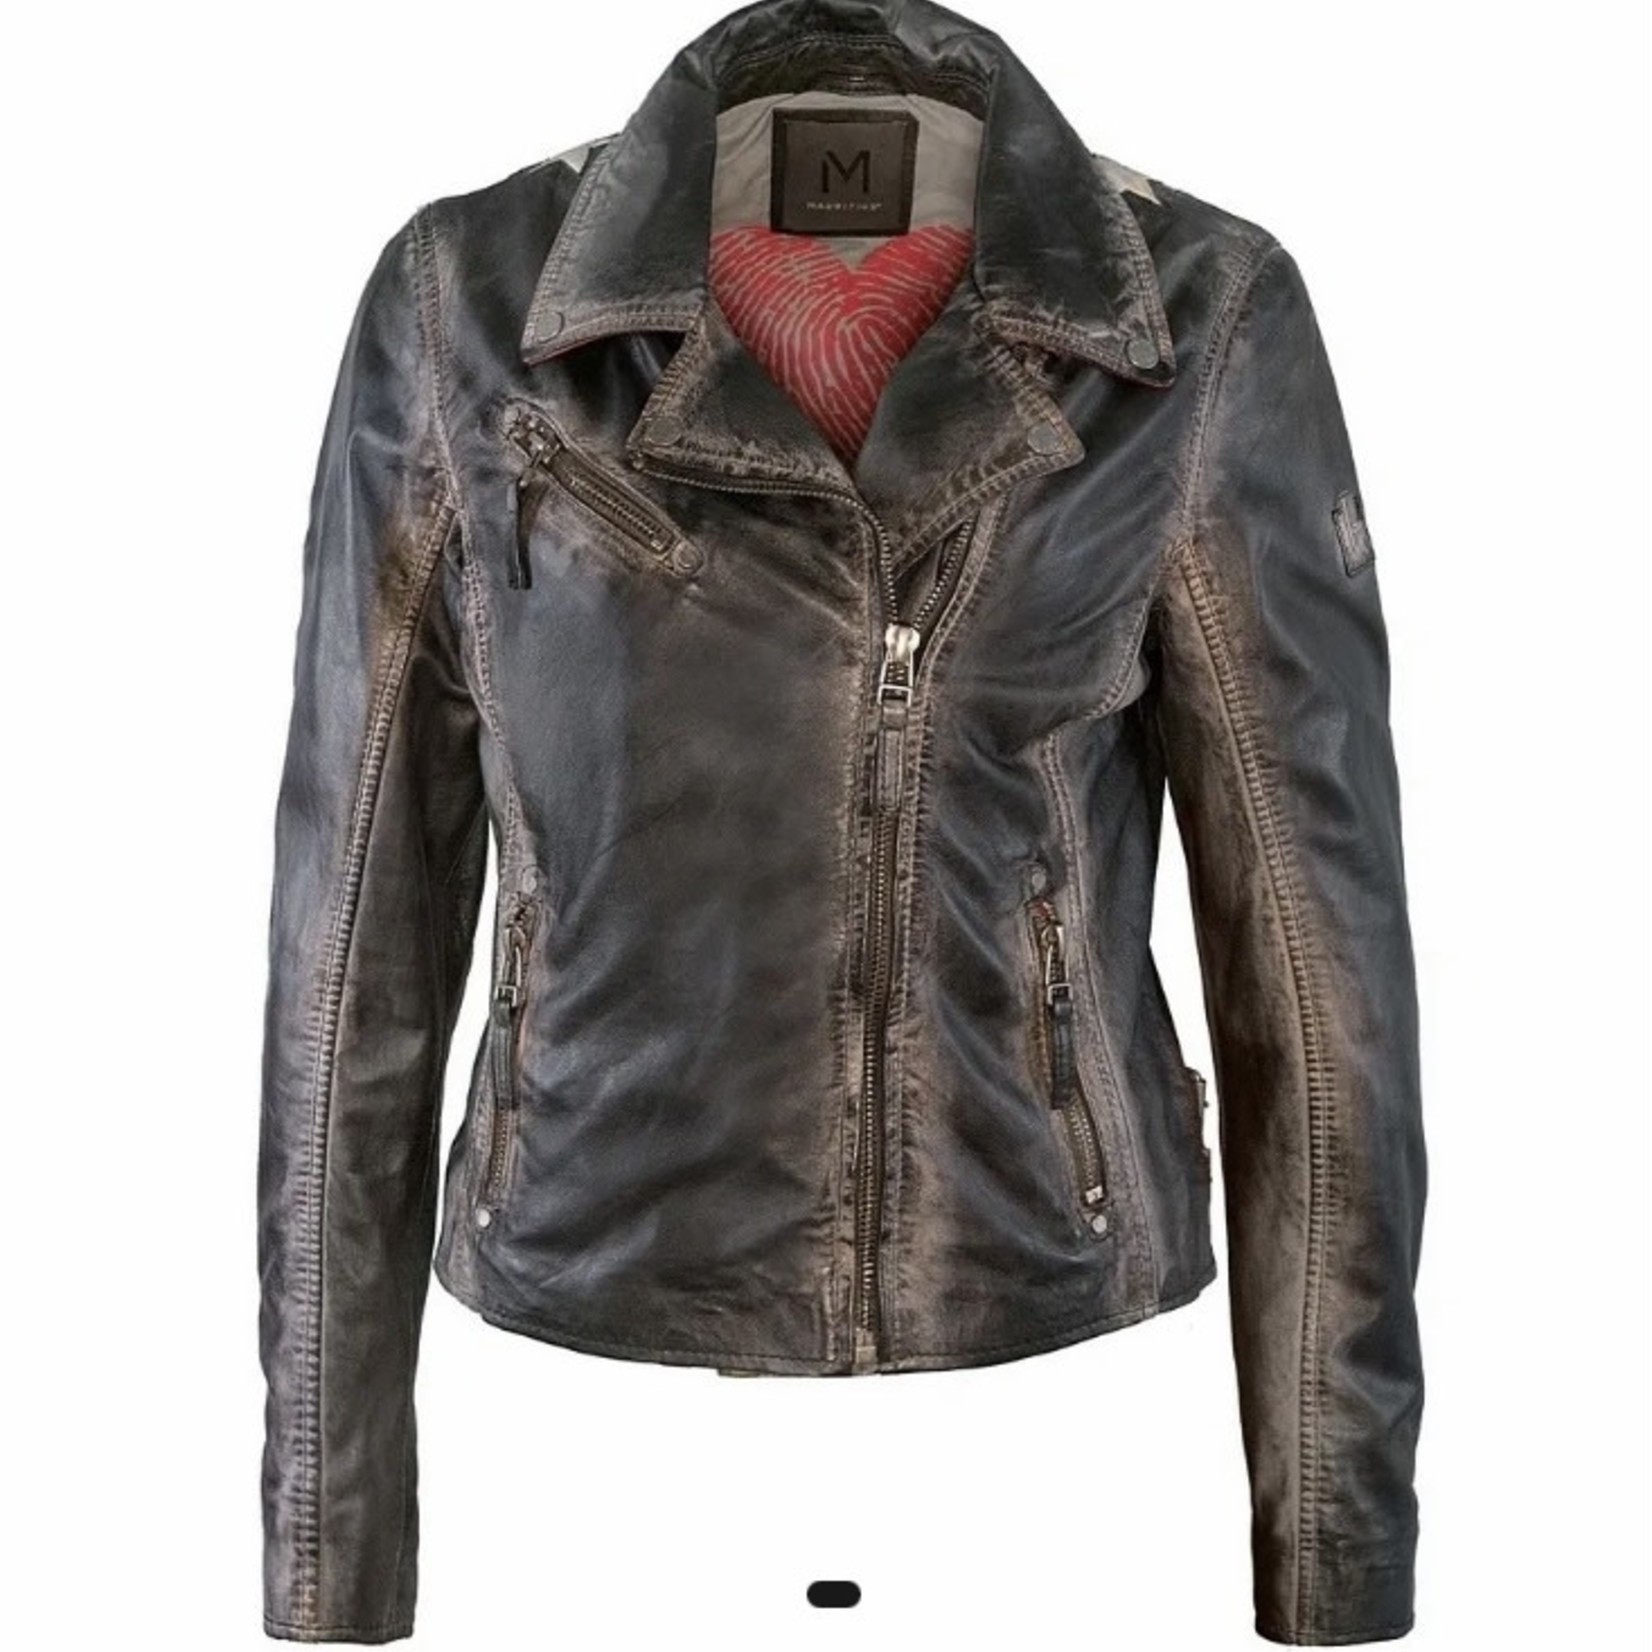 Mauritius Christy Leather Jacket With Red Detail